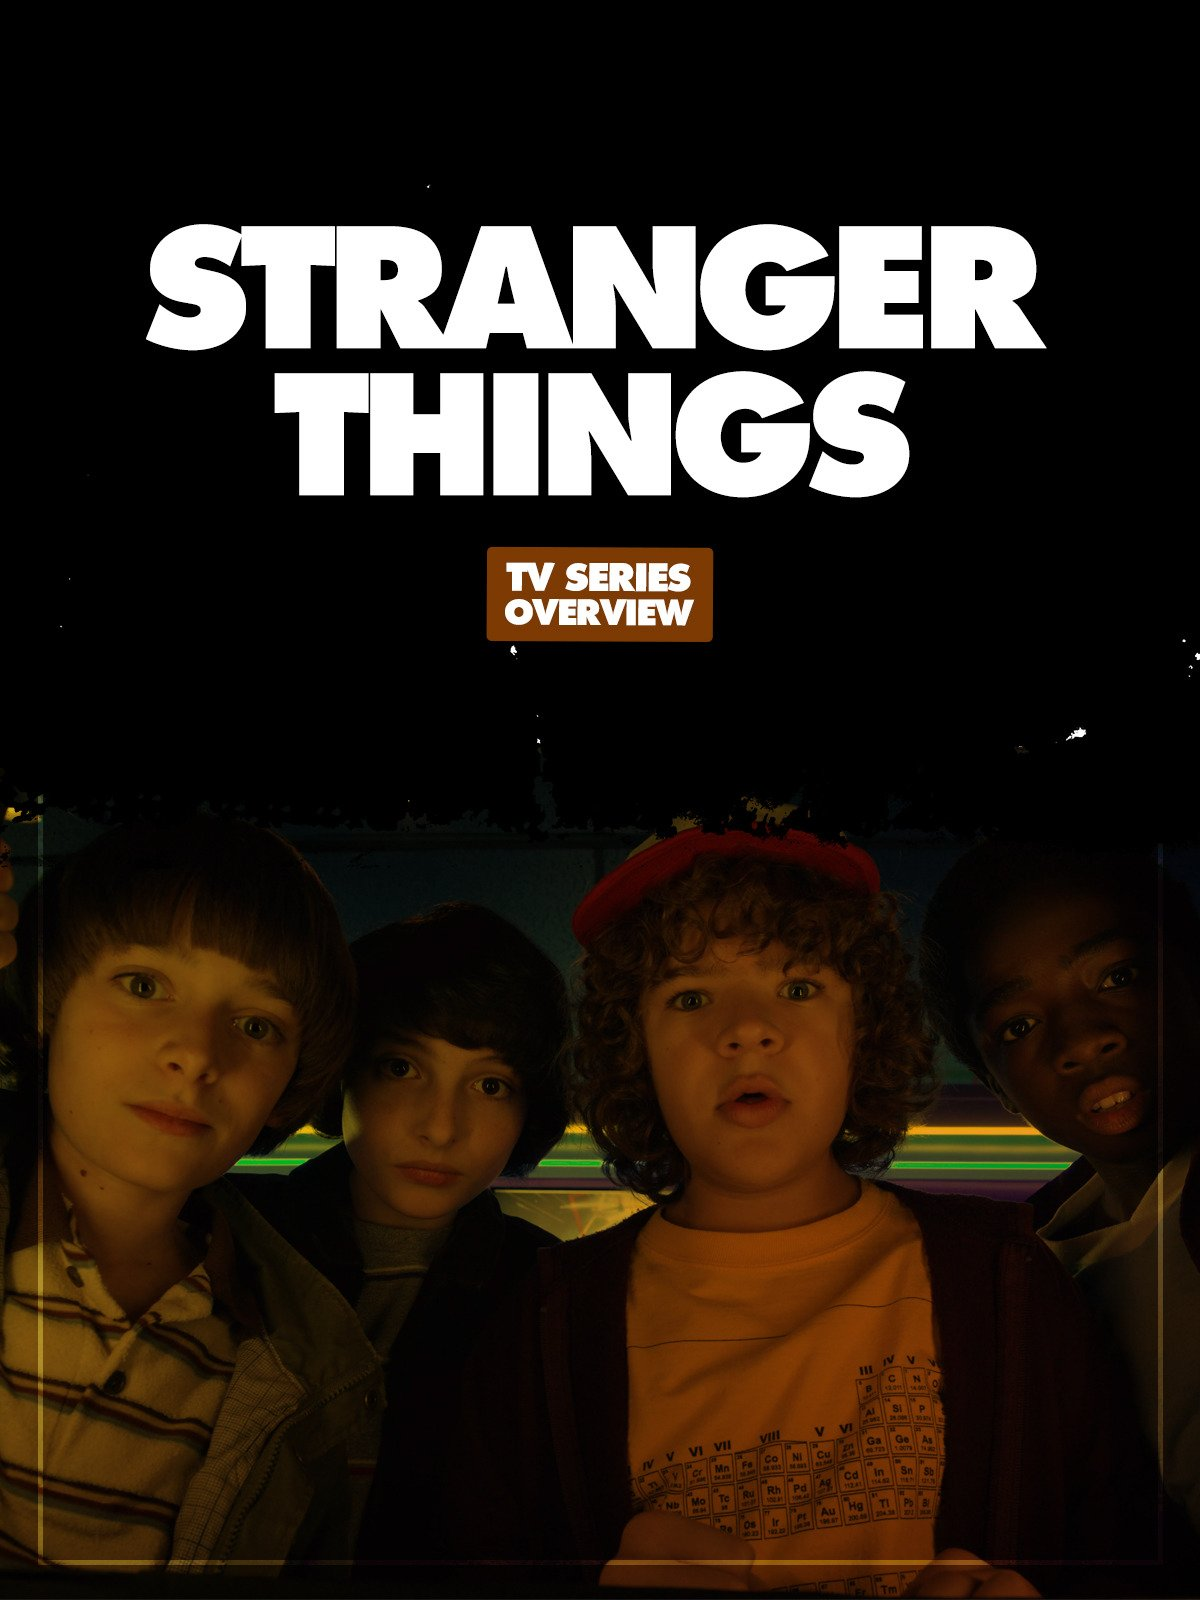 Watch 'Stranger Things TV Series Overview' on Amazon Prime